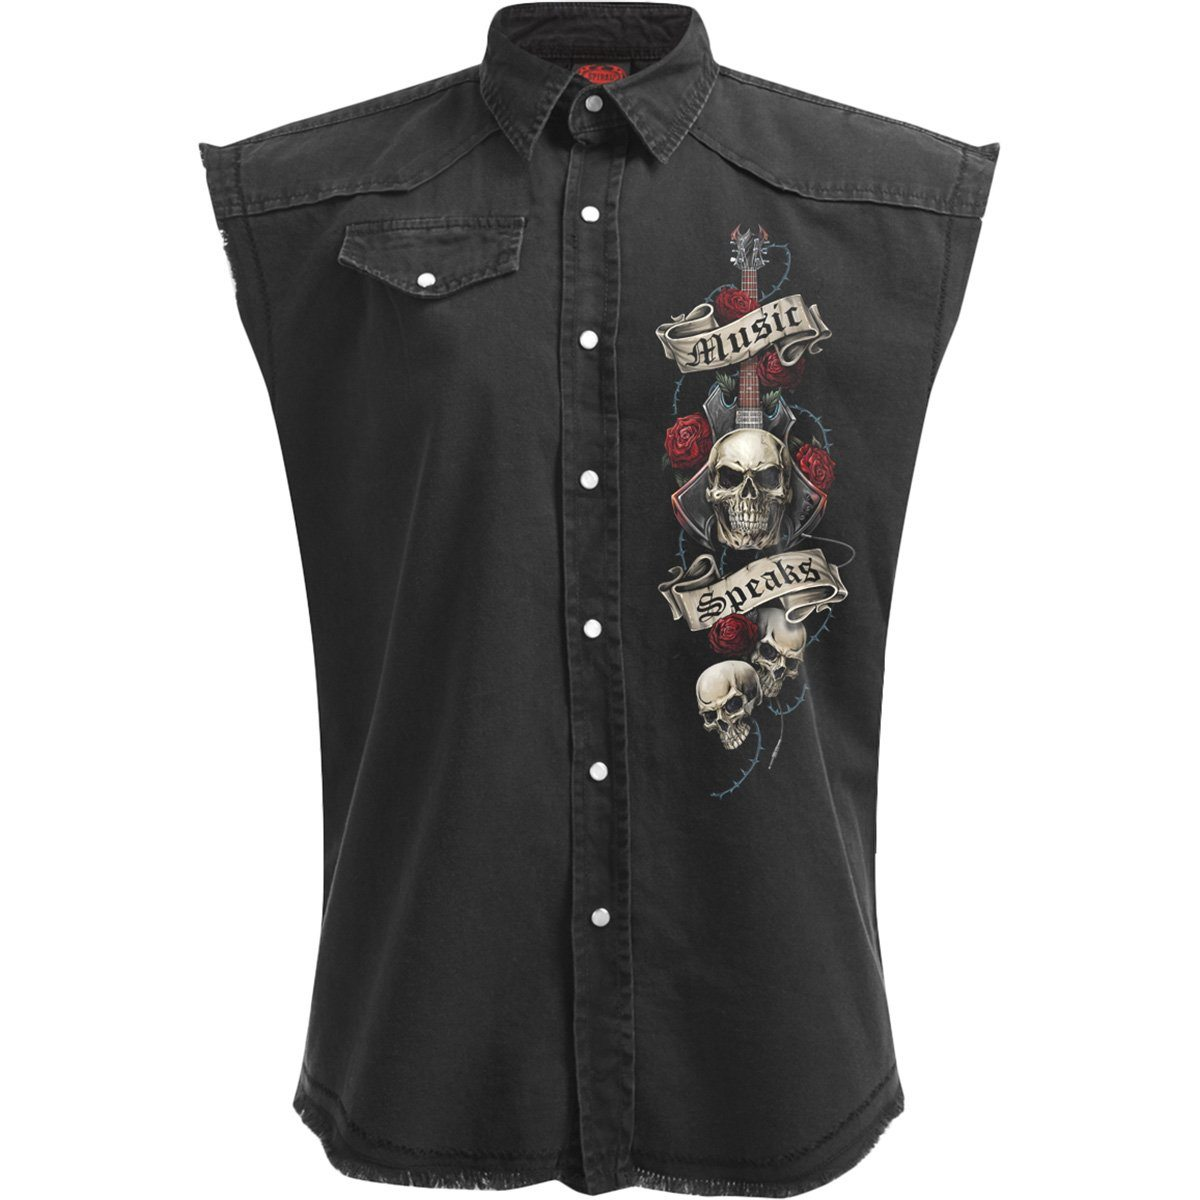 Heavy Metal Skulls Men's Black Sleeveless Shirt